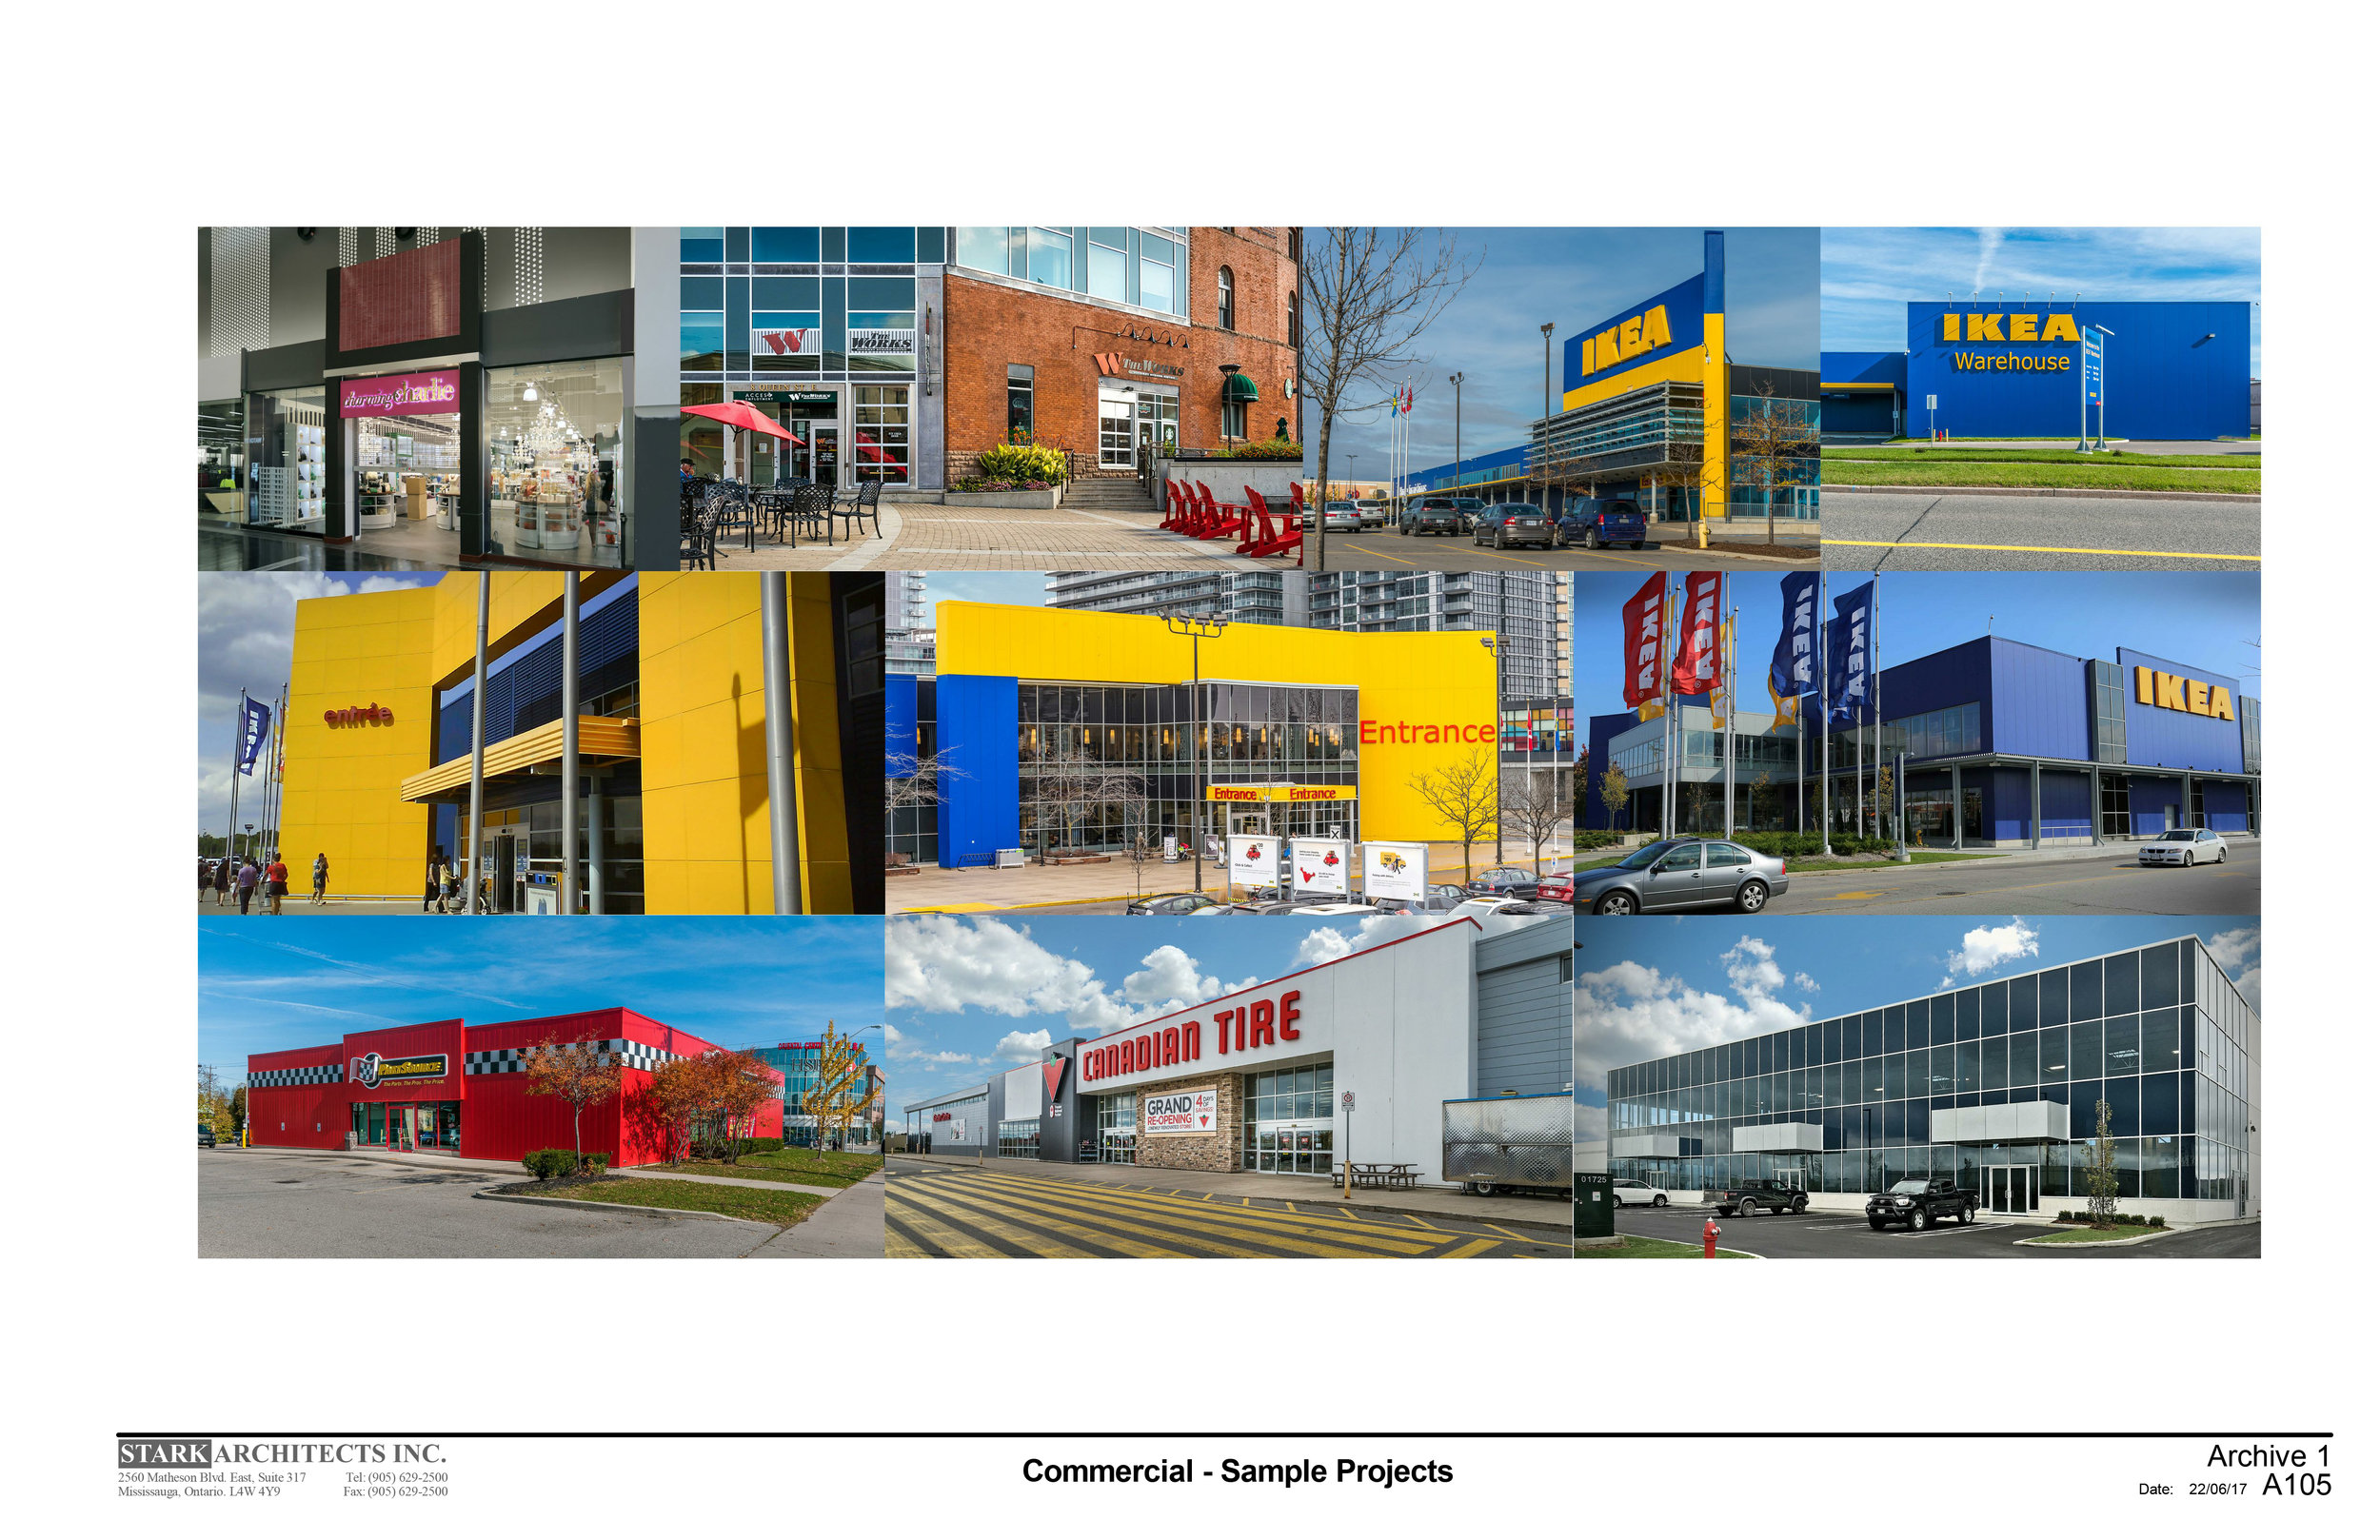 STARK ARCHITECTS INC - SAMPLE PROJECTS - COMMERCIAL - 22-06-17 - A105.jpg